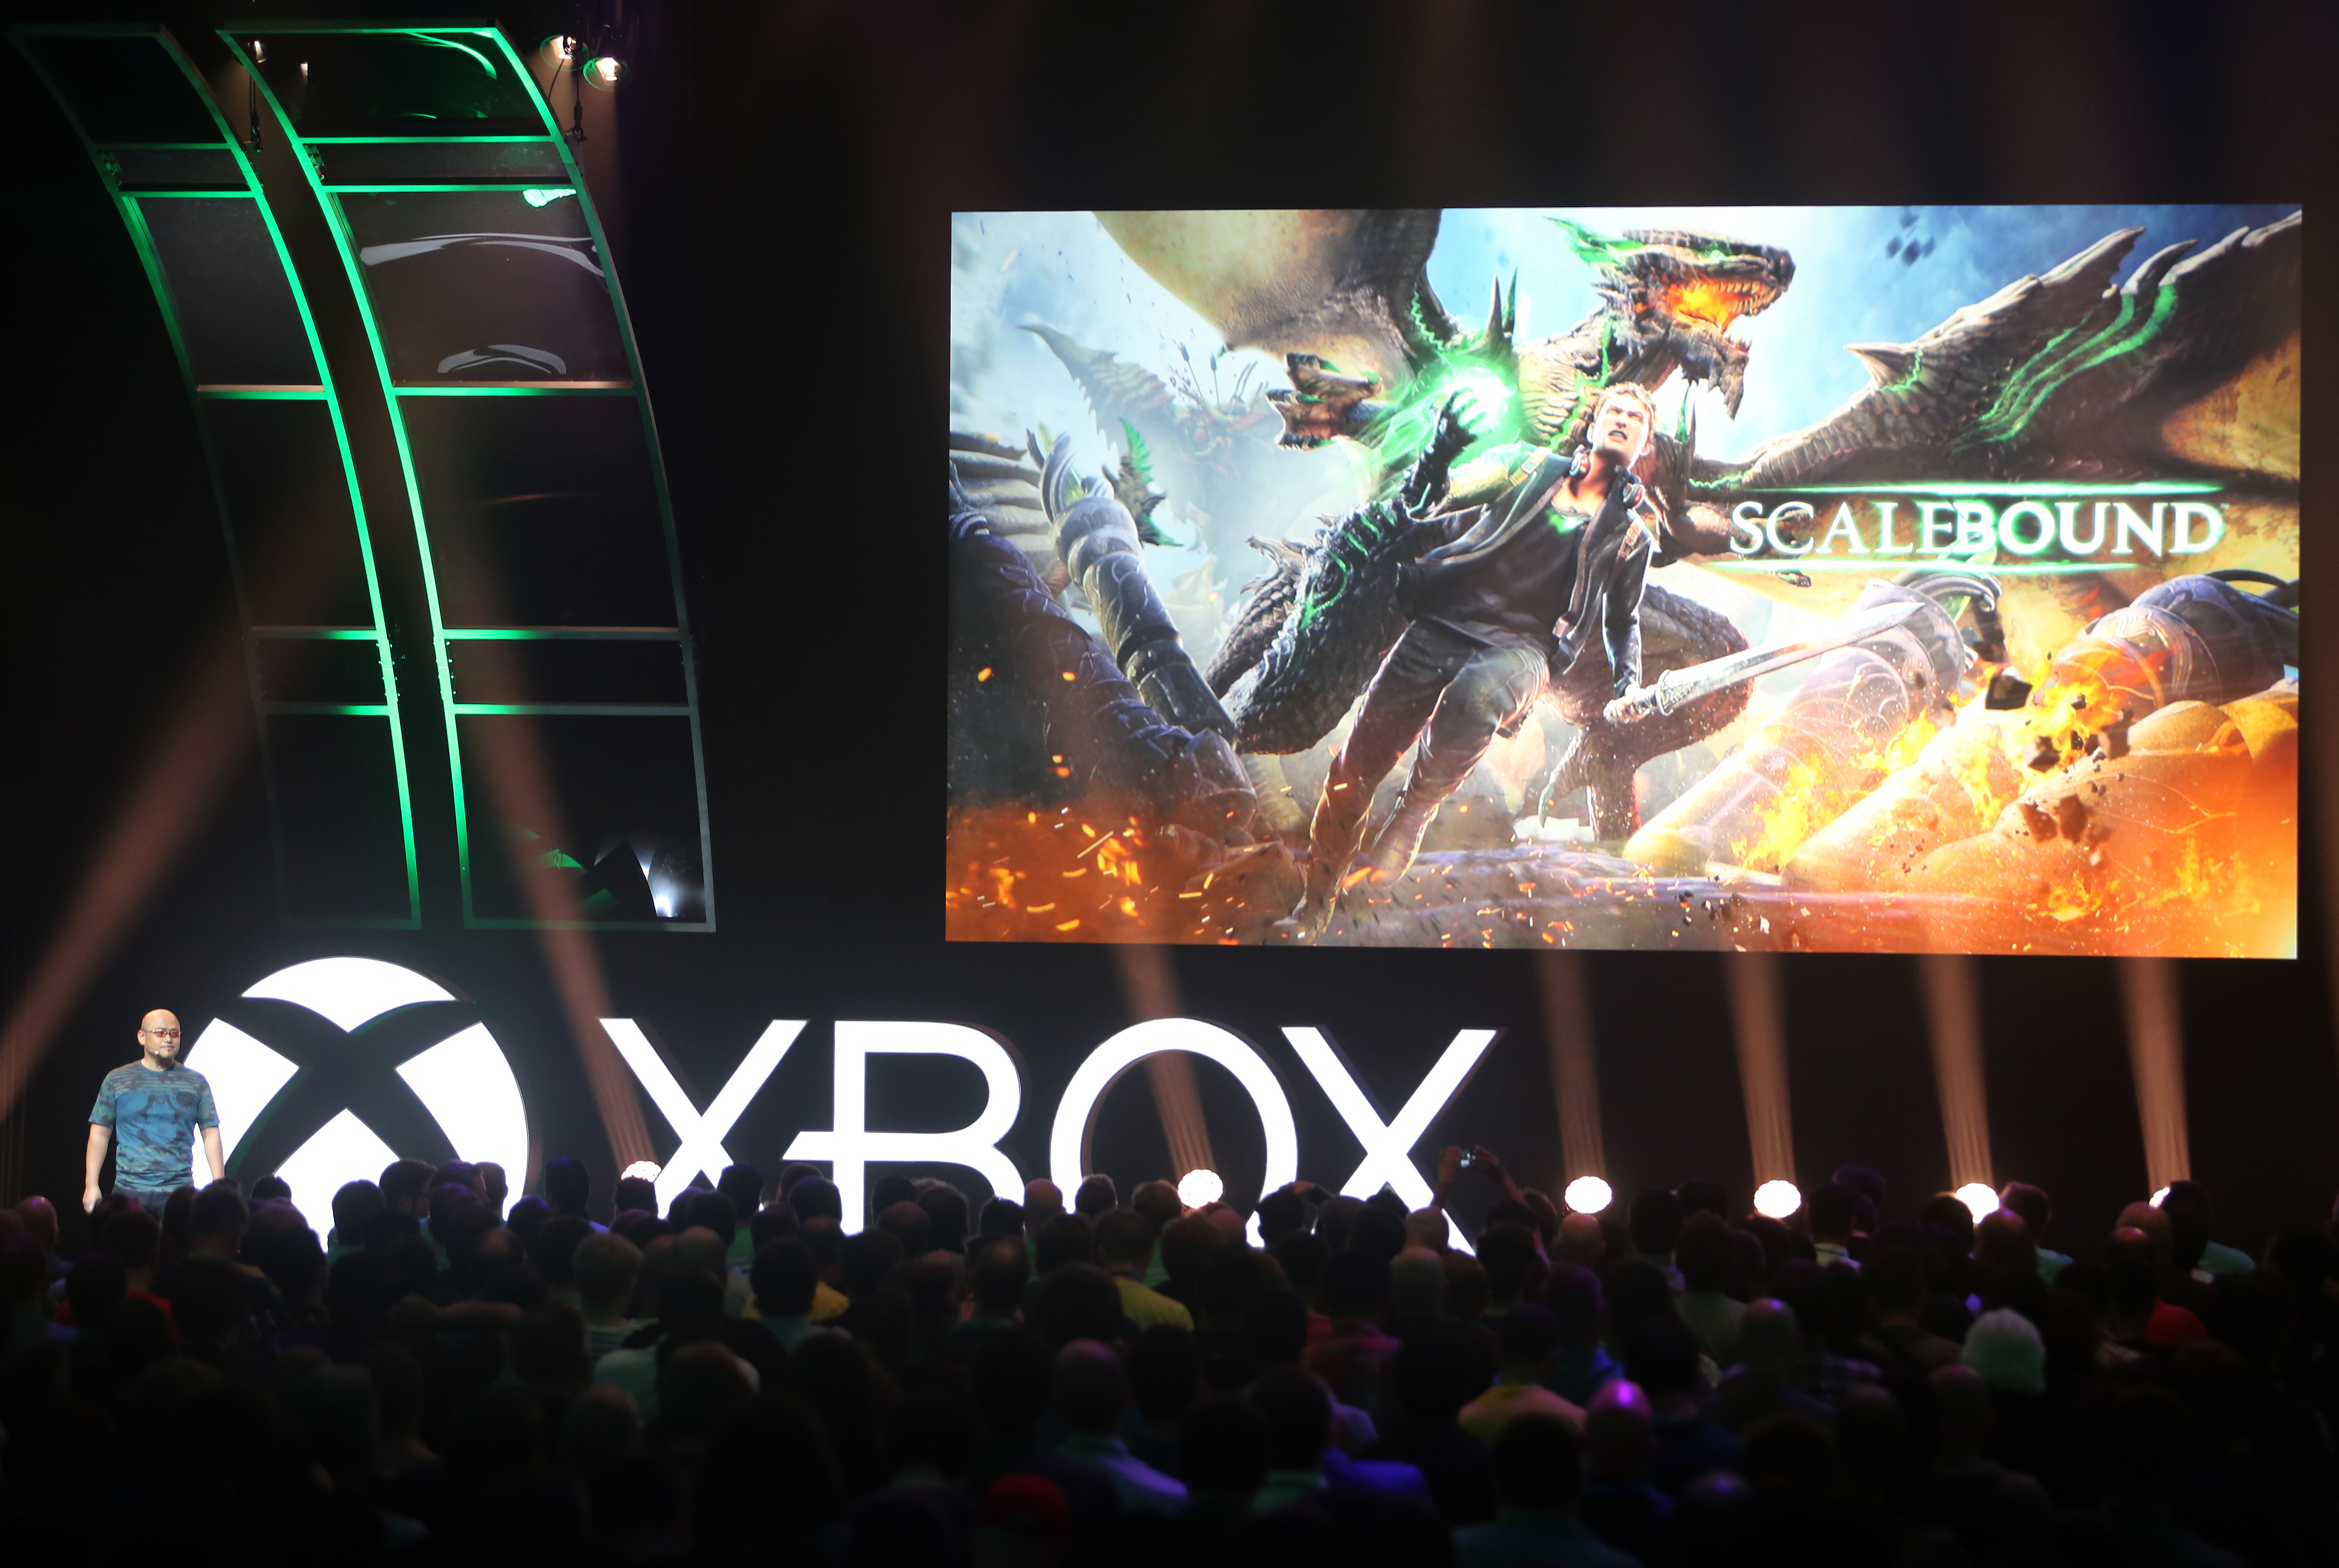 Hideki Kamiya, Game Director, PlatinumGames, at the Xbox gamescom 2015 Briefing on Tuesday, 4 August 2015 in Cologne, Germany. (Photo by Juergen Schwarz for Microsoft)